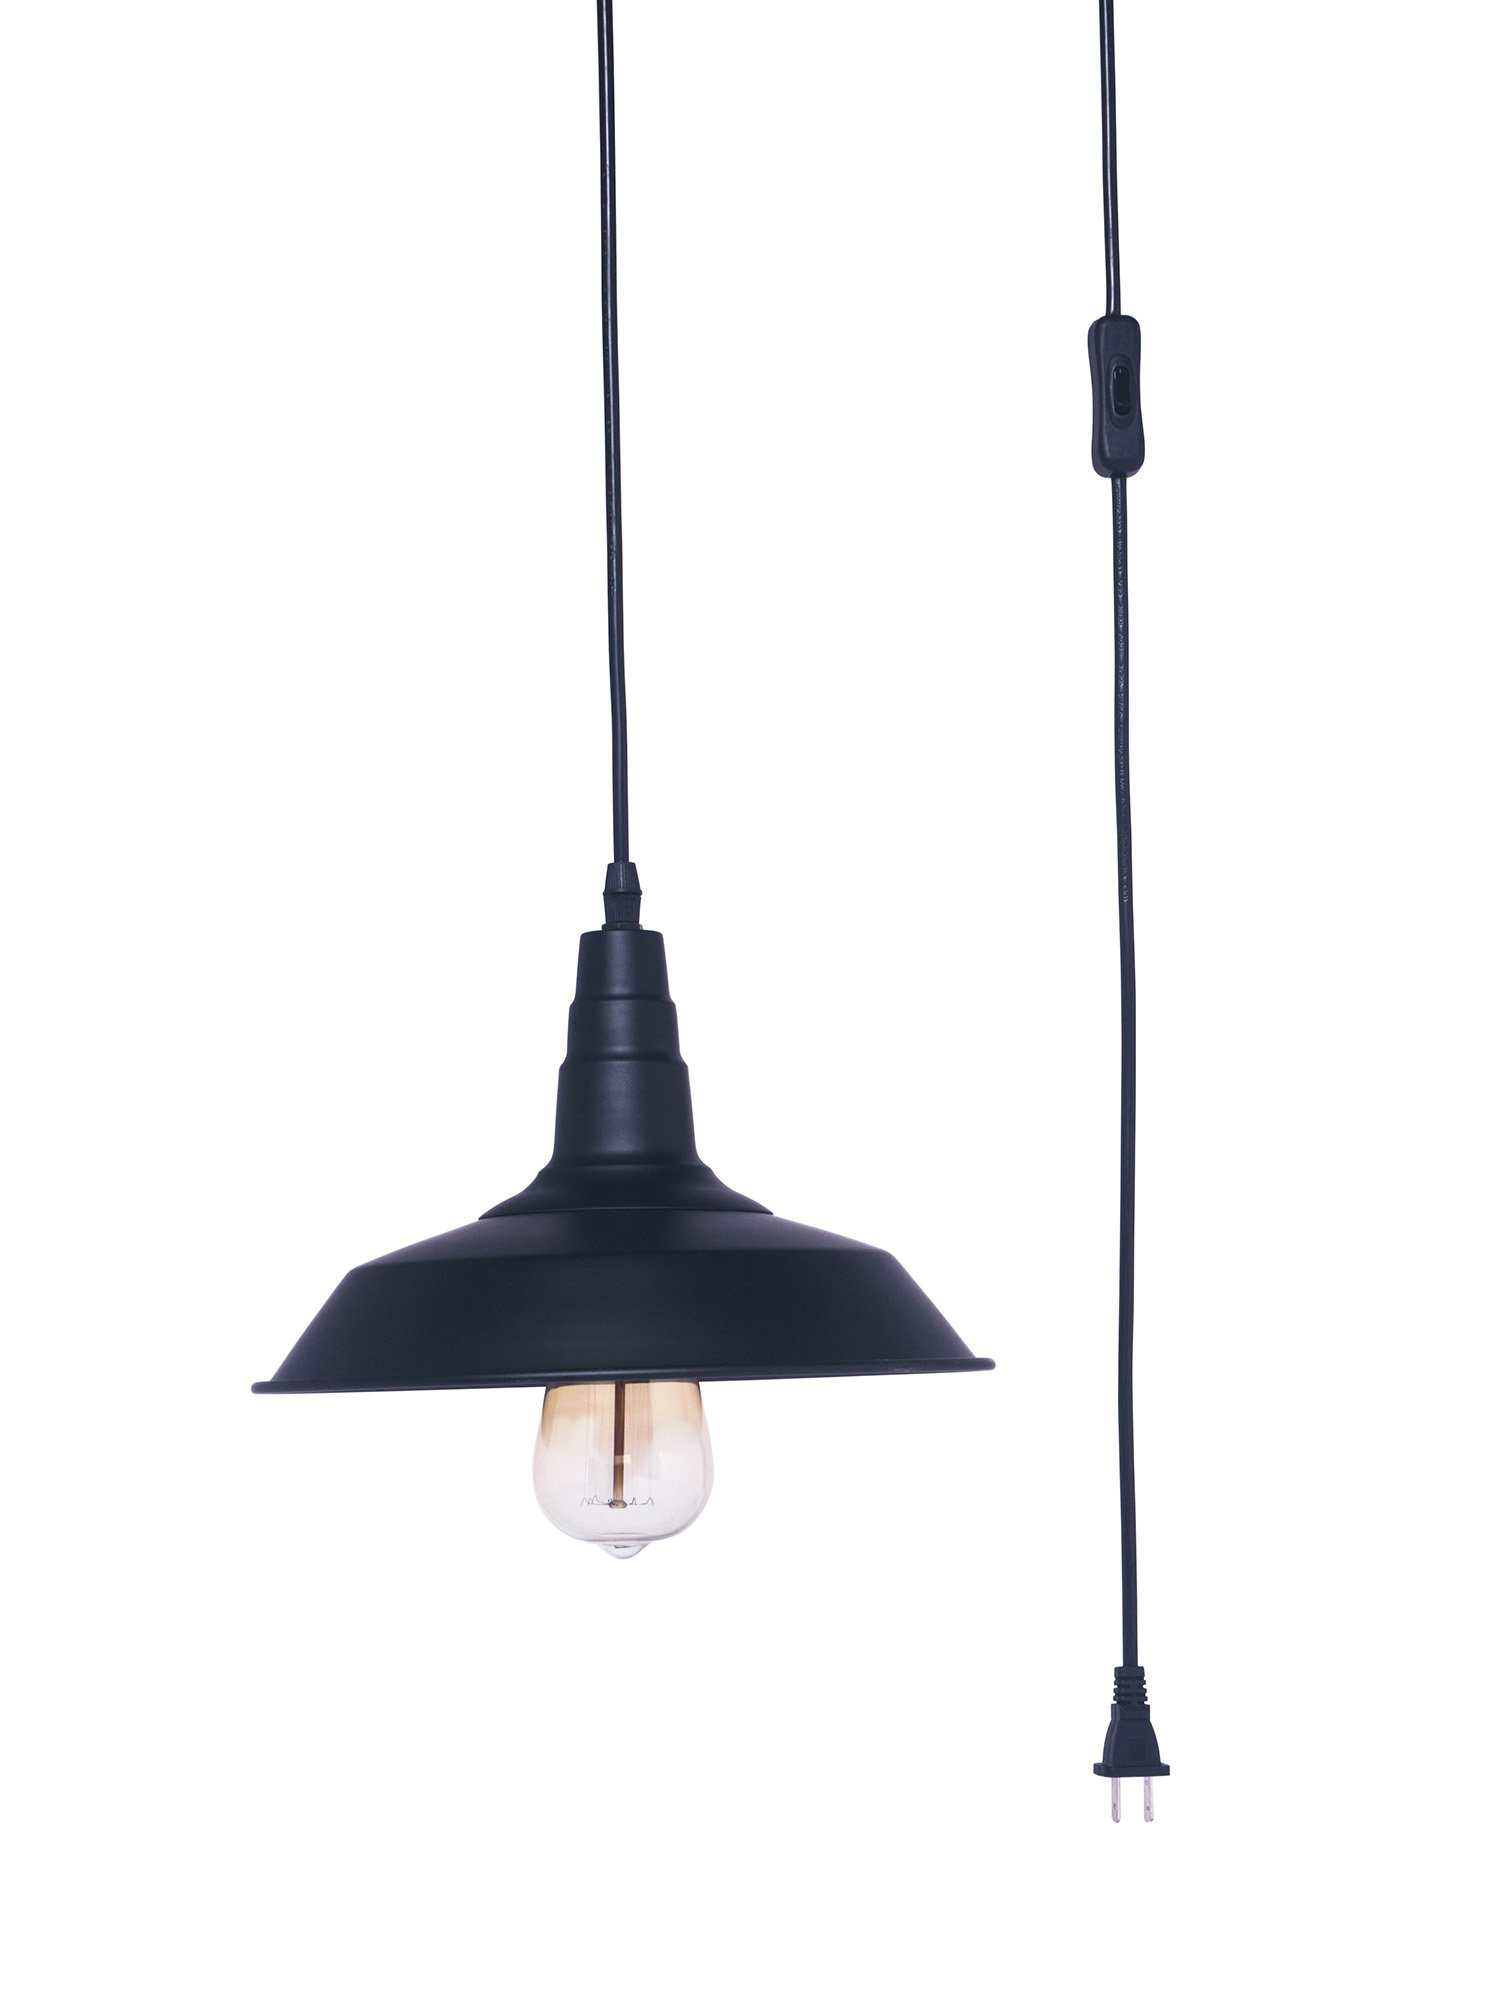 Ivalue Industrial Plug-in Pendant Light Fixture with Switch Cord Metal Black Warehouse Hanging Pendant Lamp E26 Base Type Bulb Not Included(D-Black-Plug in)